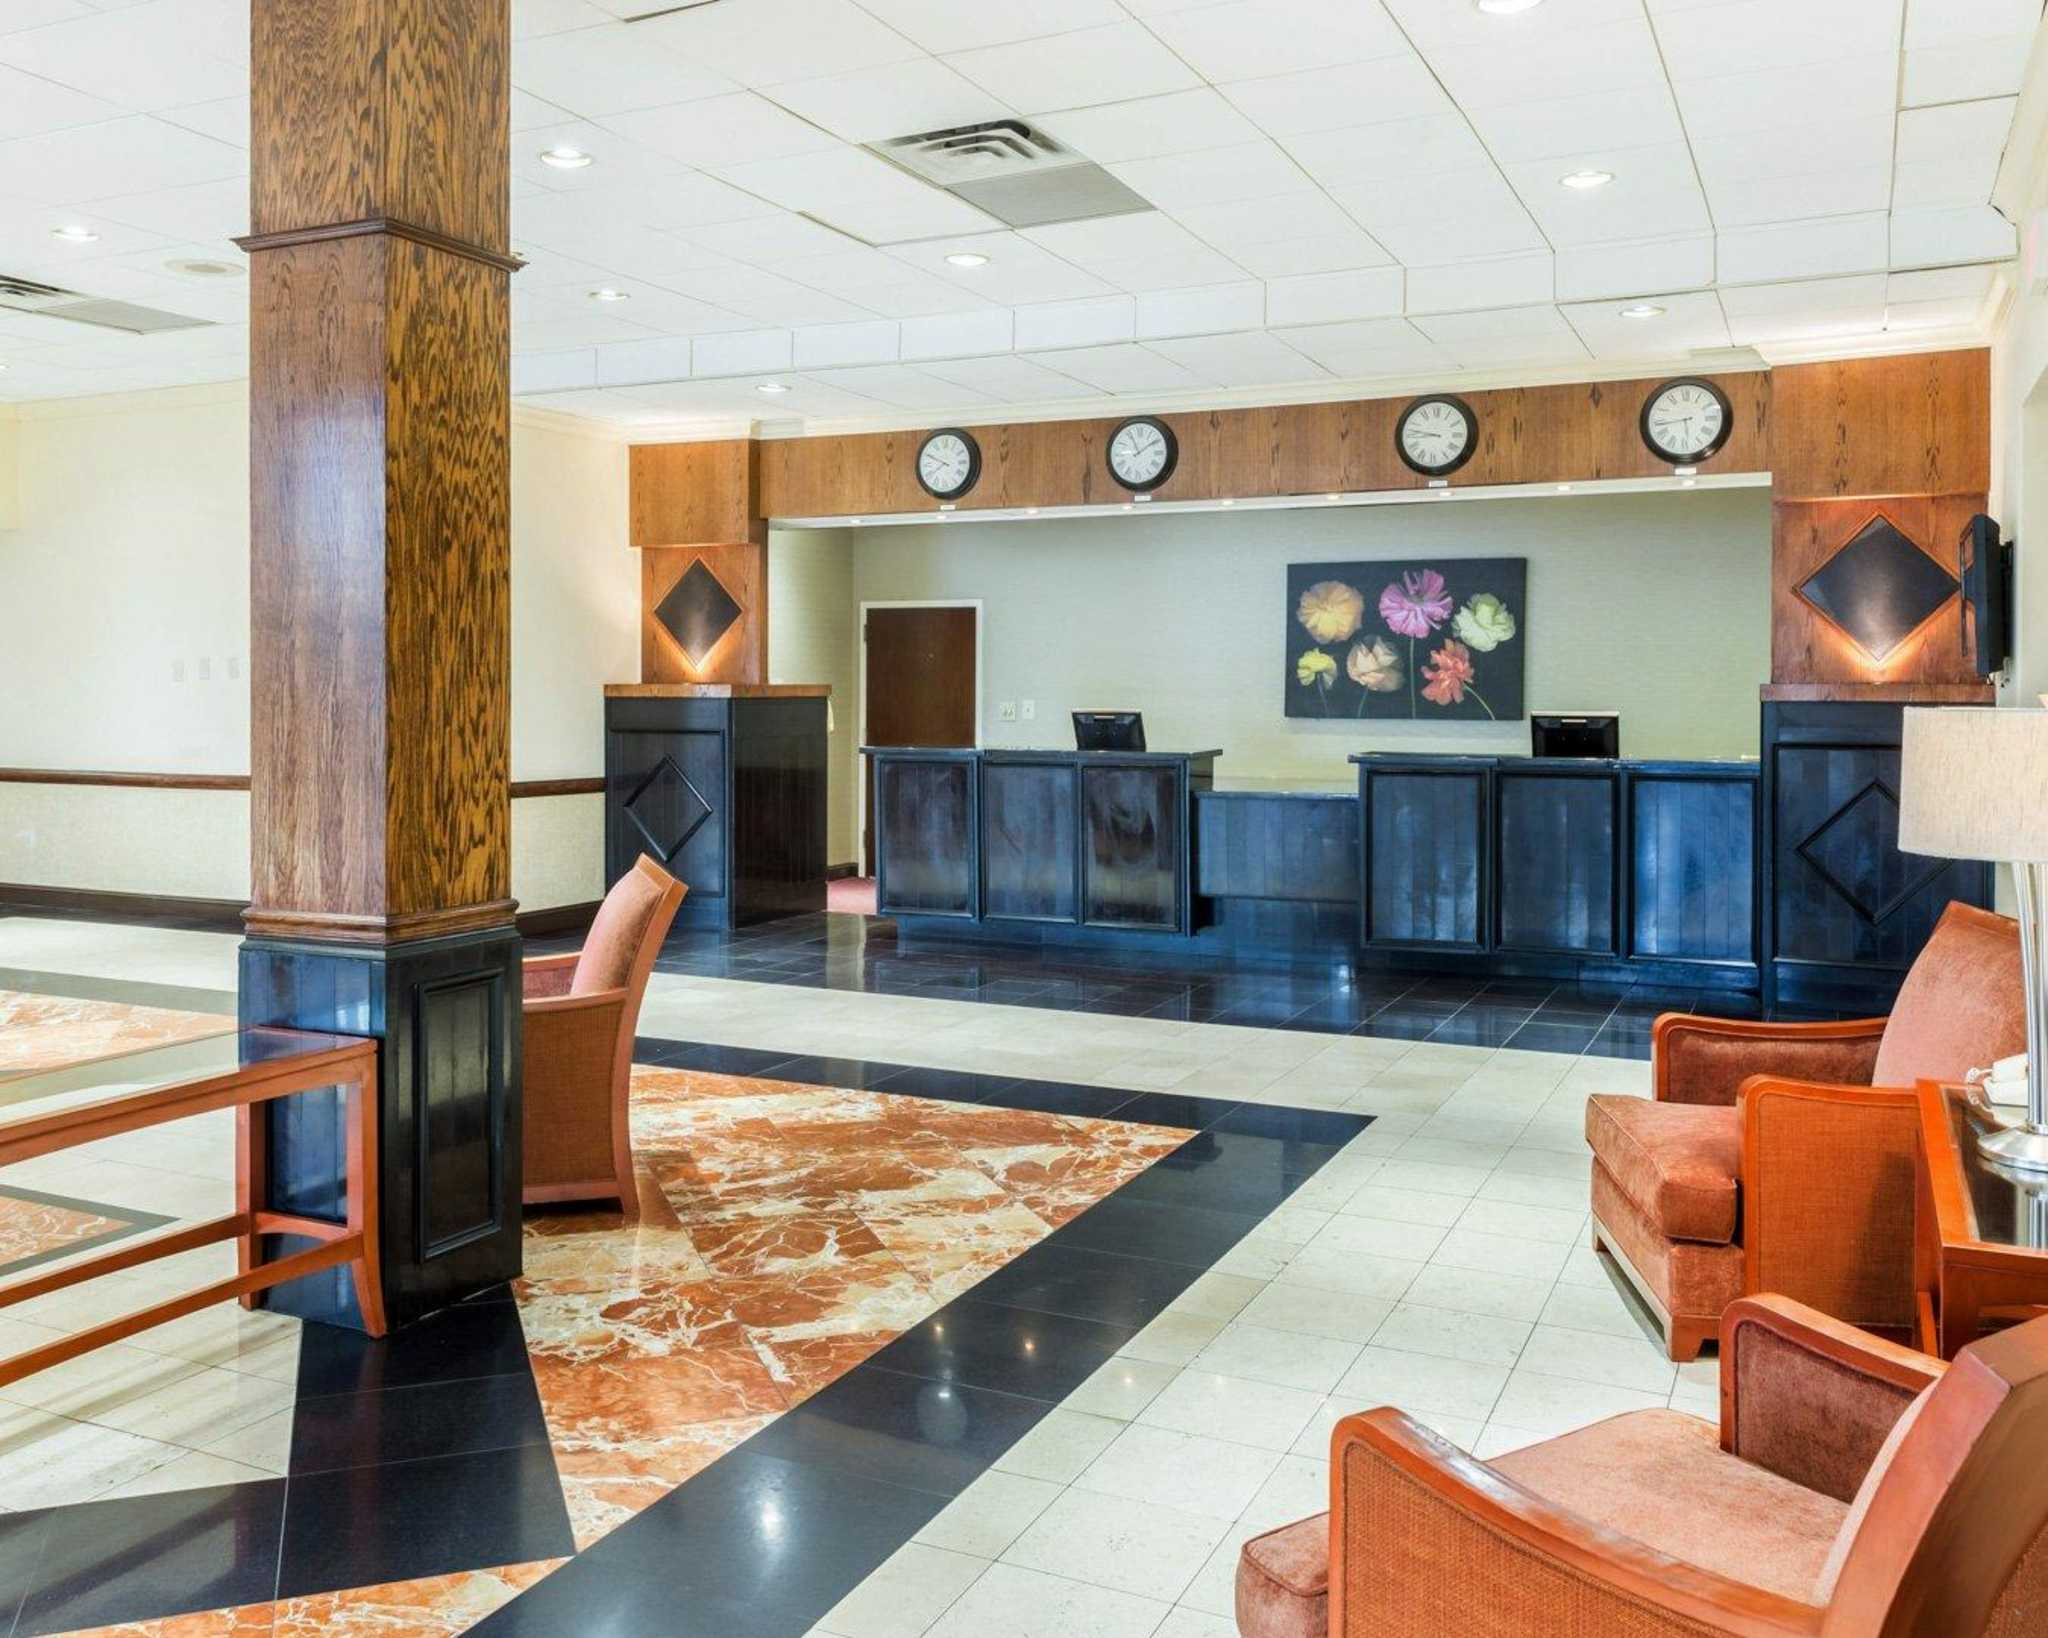 Clarion Hotel image 17